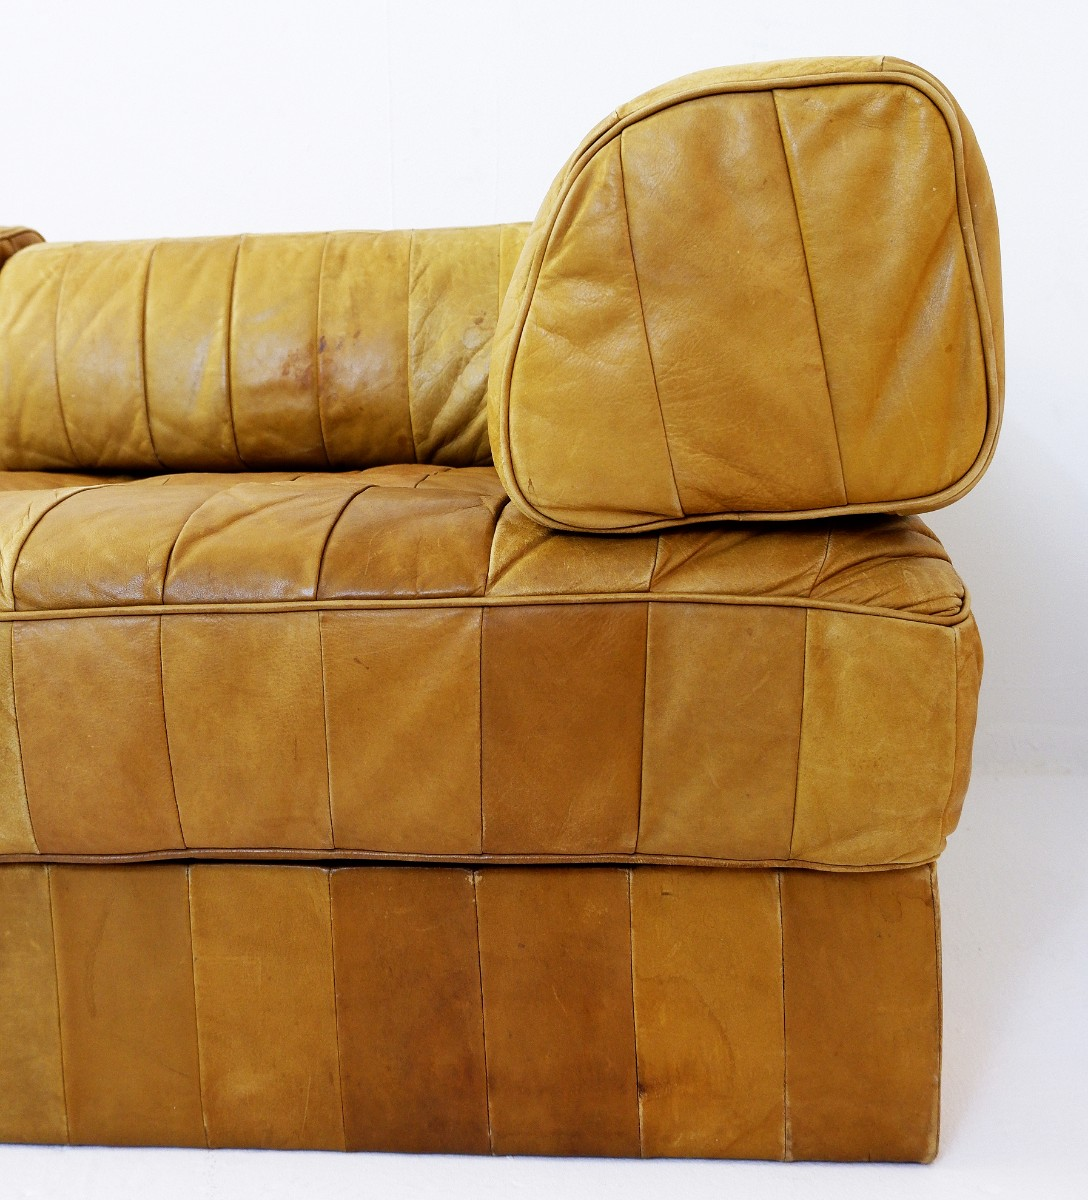 De Sede Patchwork.Ds88 Patchwork Cognac Laether Modular Sofa From De Sede